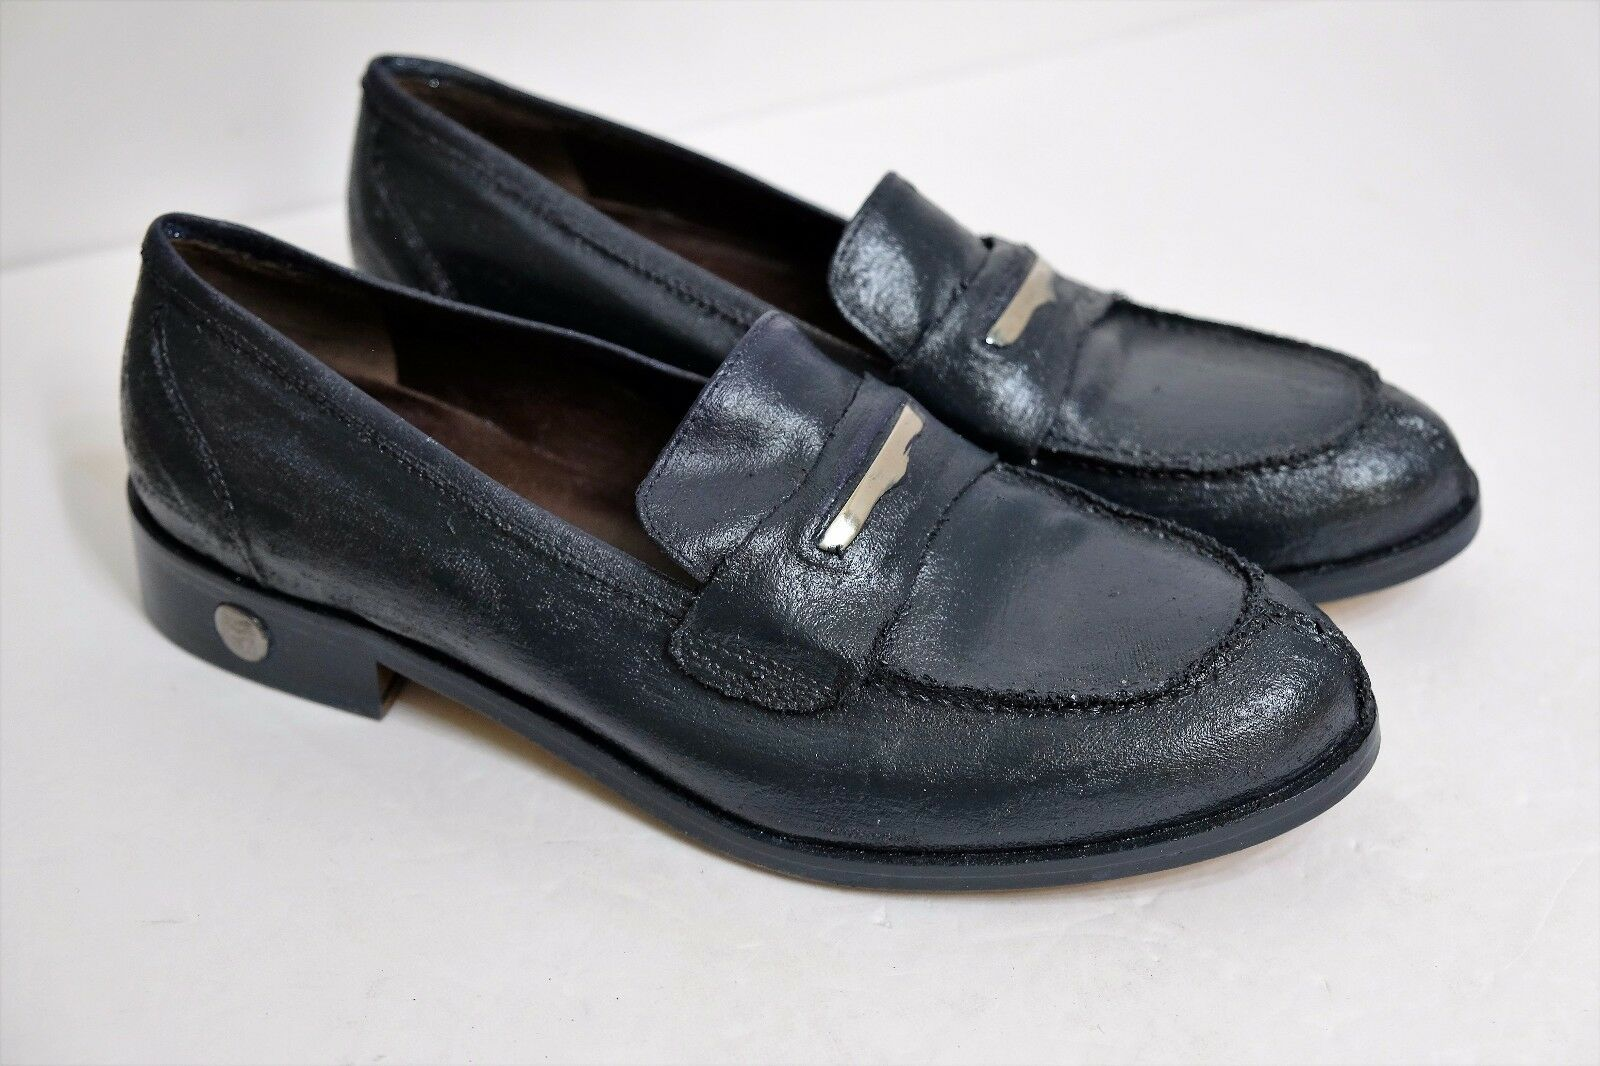 VGUC Bruno Magli Women's Size US 5.5 Textured Dark Blue Grey Penny Loafers